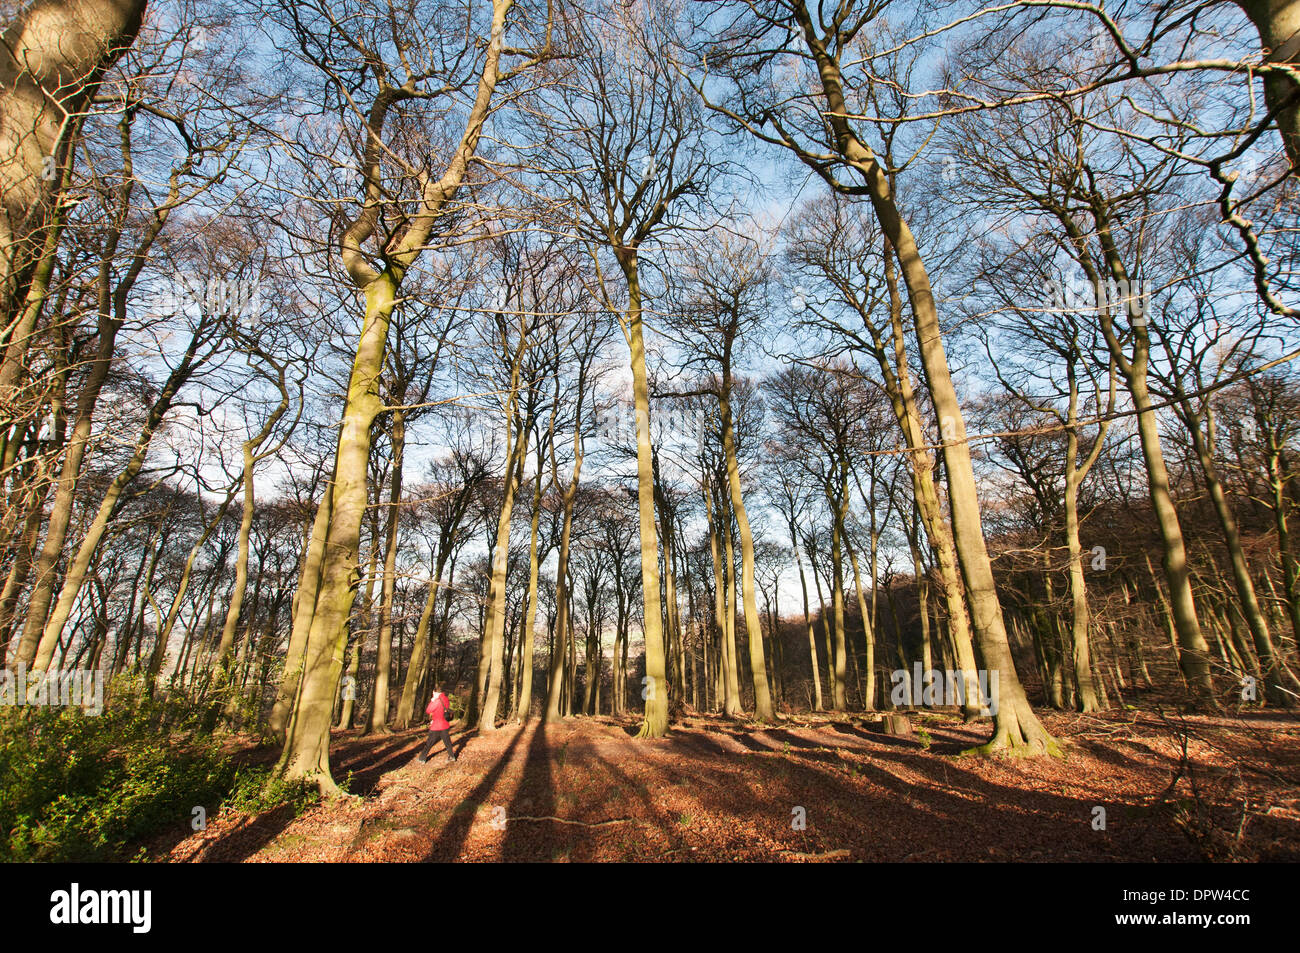 Aston Rowant National Nature Reserve, Stokenchurch, England, UK. A man walks through the beech wood during early winter - Stock Image